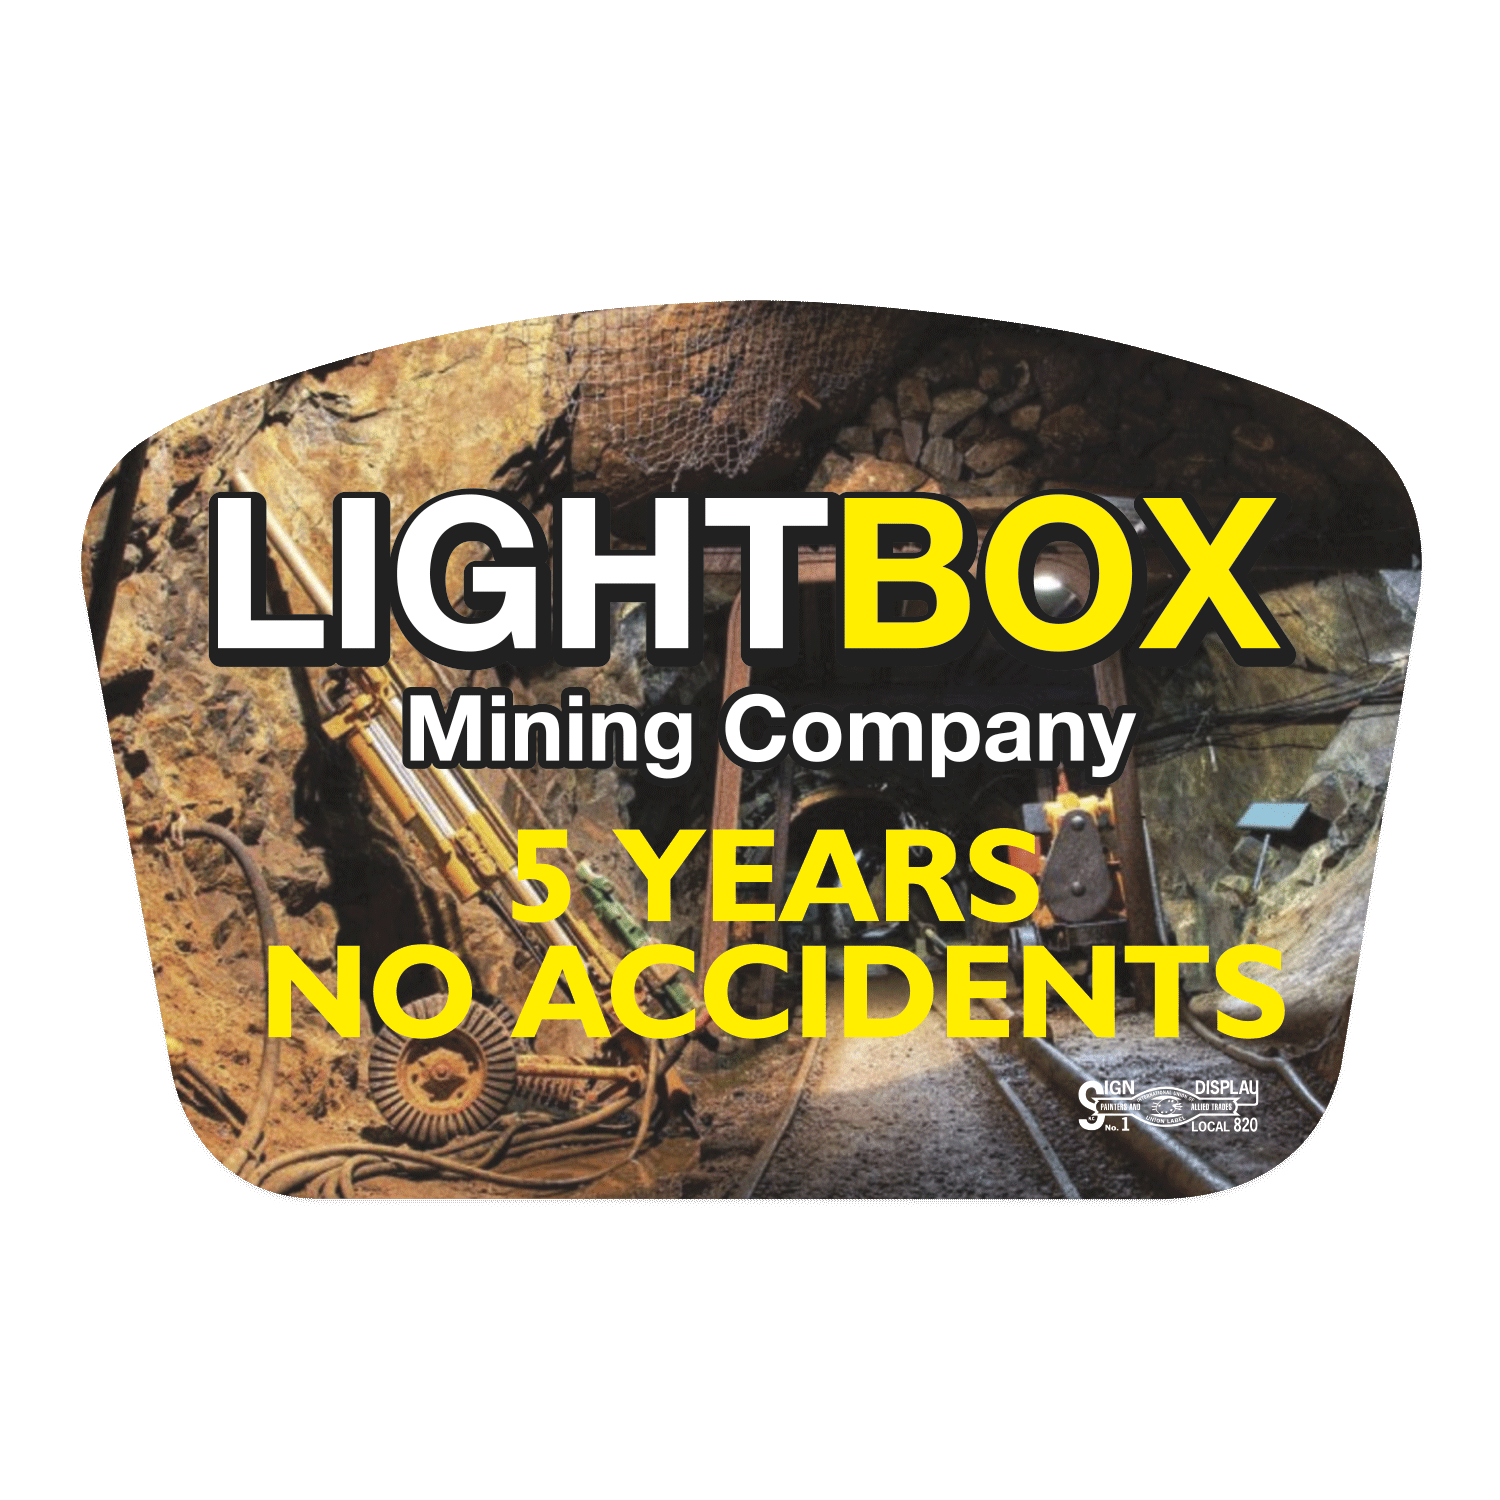 https://www.sswprinting.com/images/products_gallery_images/13405_Lightbox-mine_hi-res.png